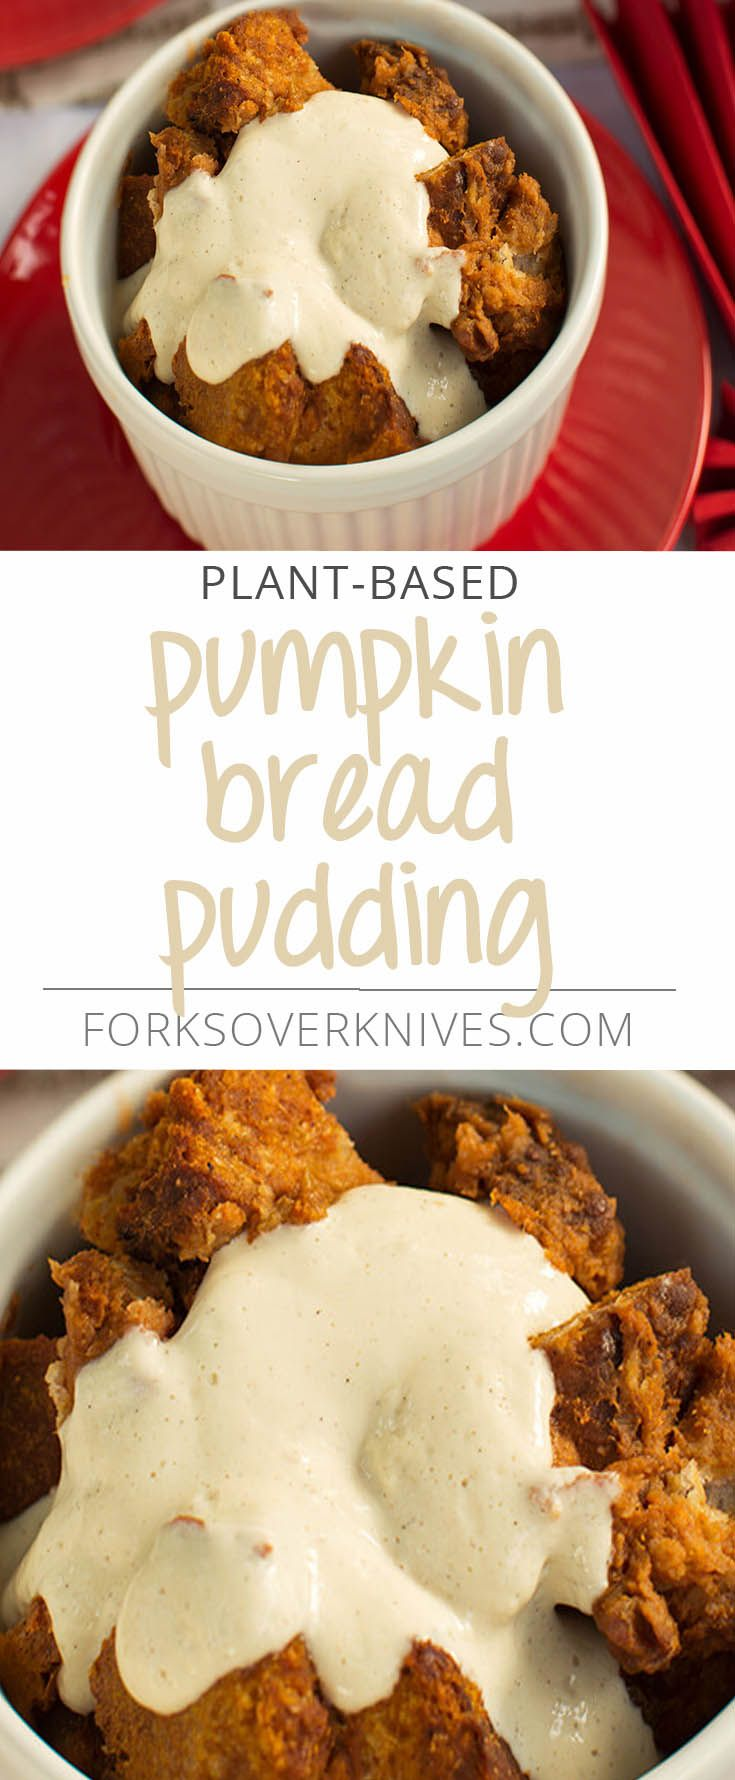 Pumpkin Bread Pudding Recipe With Images Plant Based Desserts Pumpkin Bread Pudding Vegan Pumpkin Bread